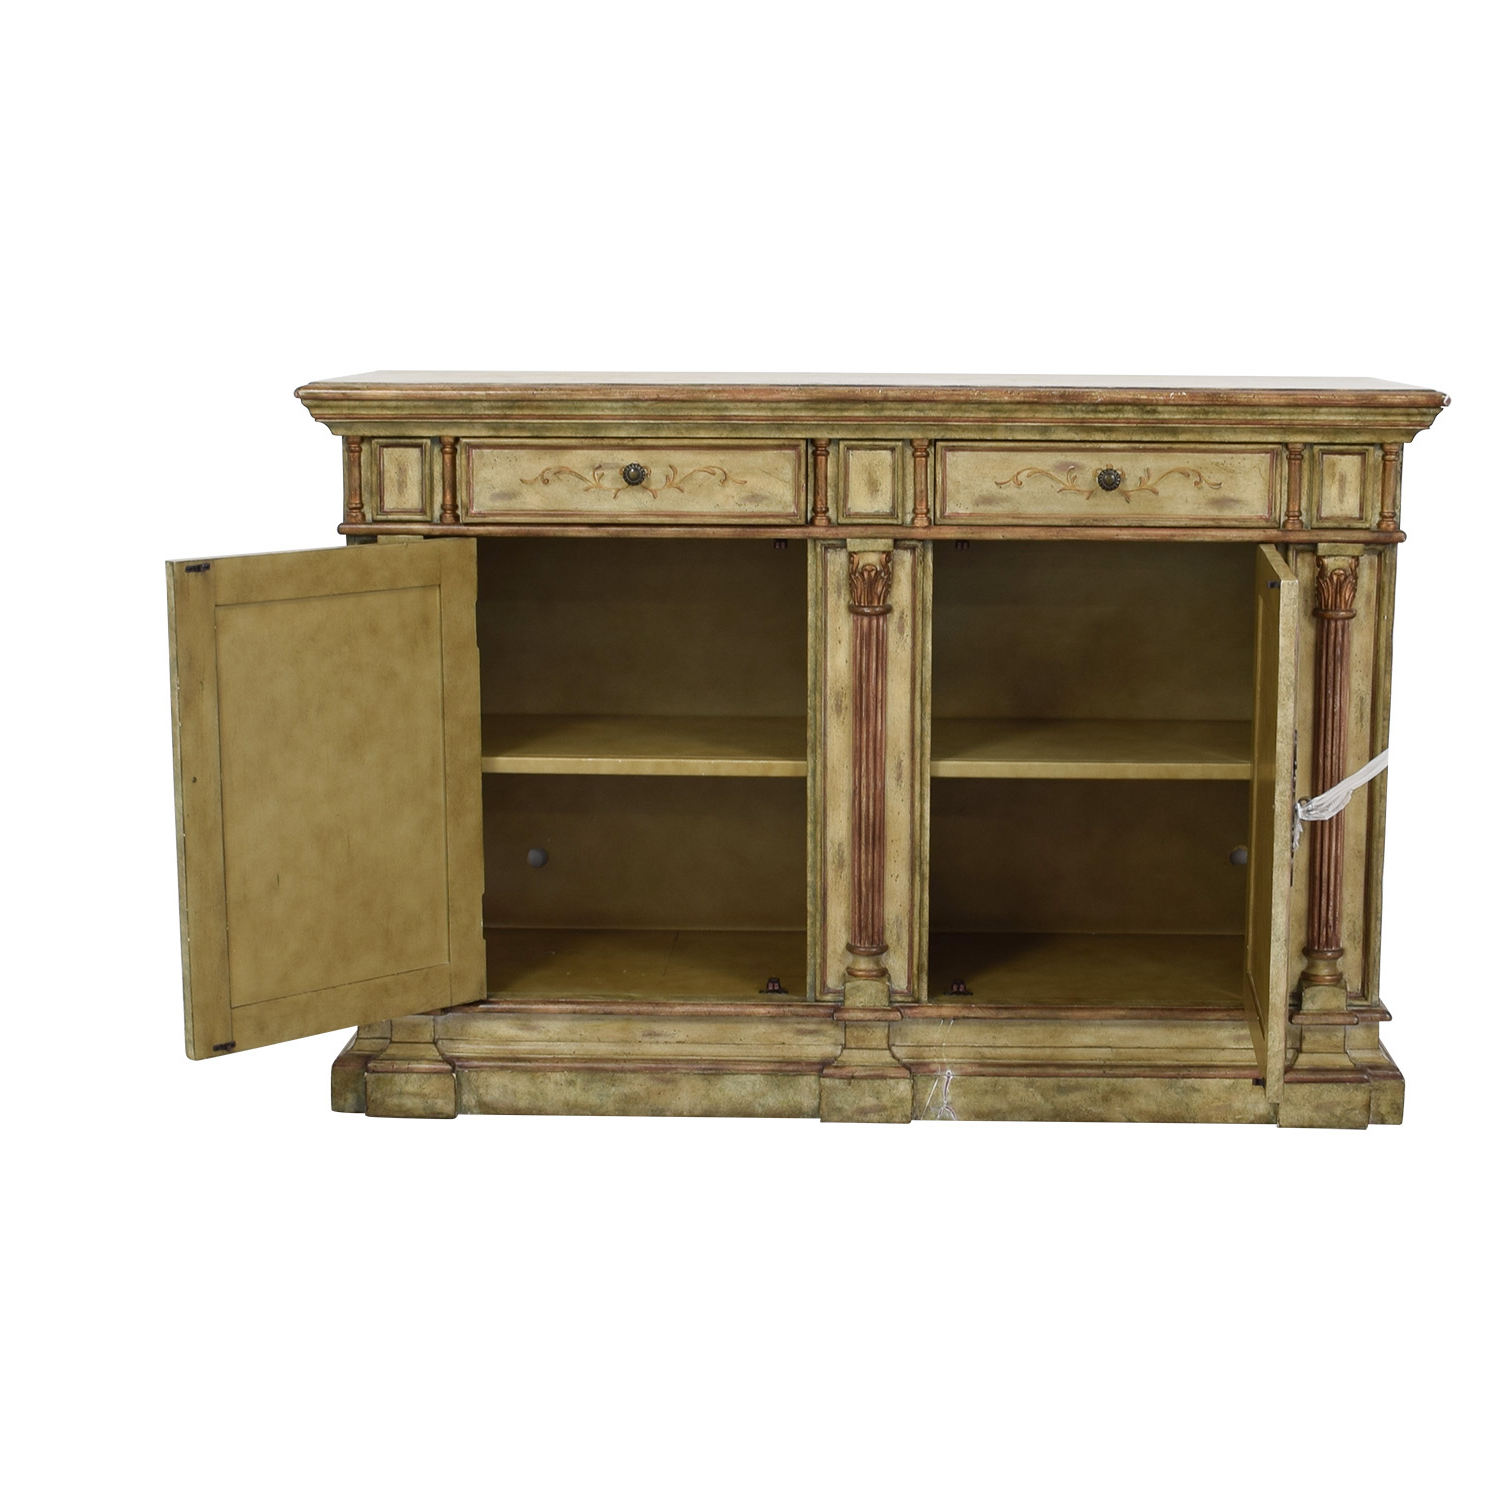 78% Off – Hooker Furniture Hooker Furniture Seven Seas Creme Scroll Painted Sideboard / Storage Within Seven Seas Asian Sideboards (View 5 of 20)